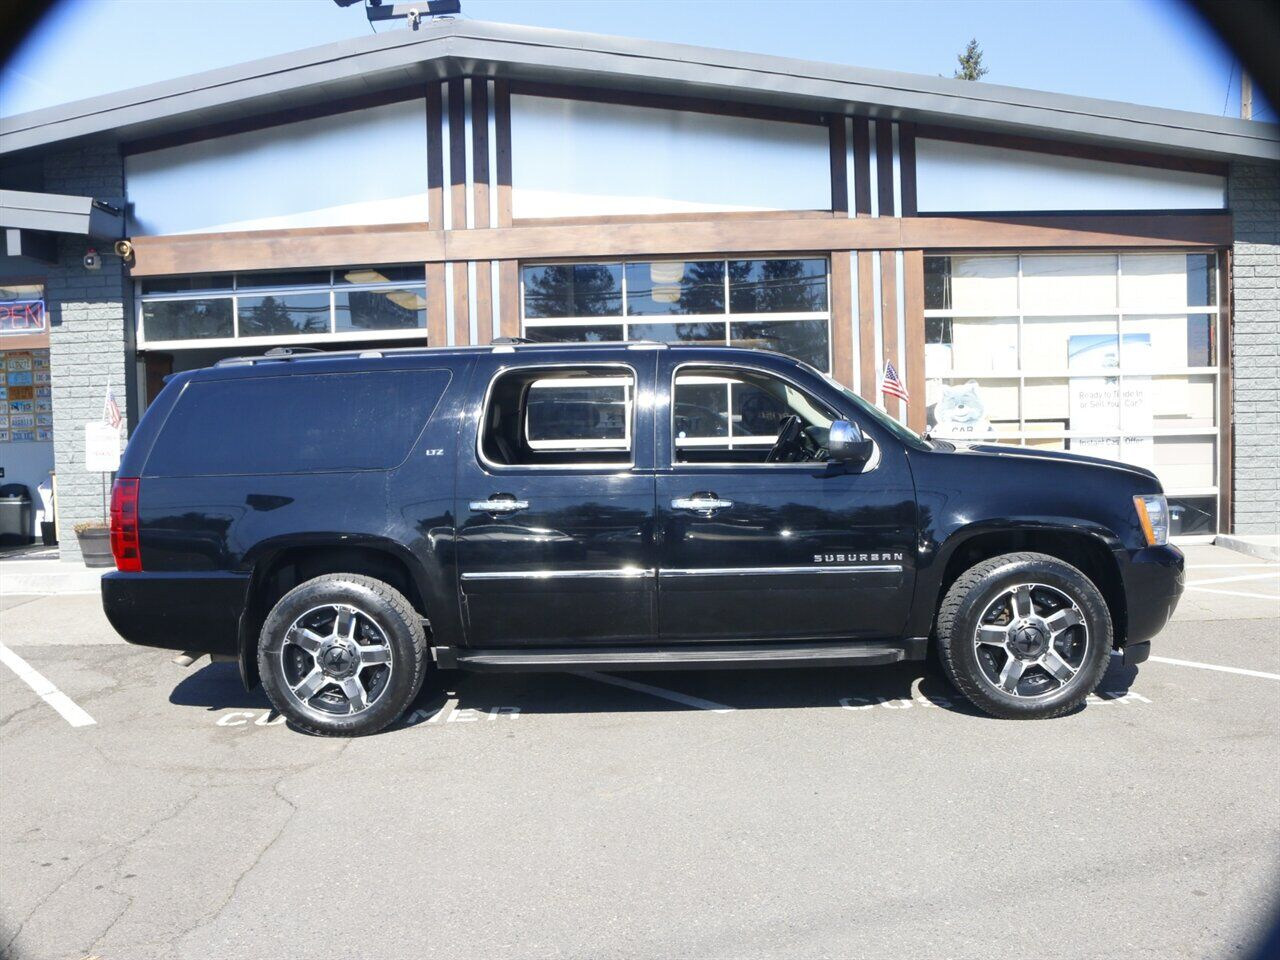 2011 Chevrolet Suburban LTZ 1500 / 4X4 / 3RD ROW / NAVI / DVD Beaverton OR